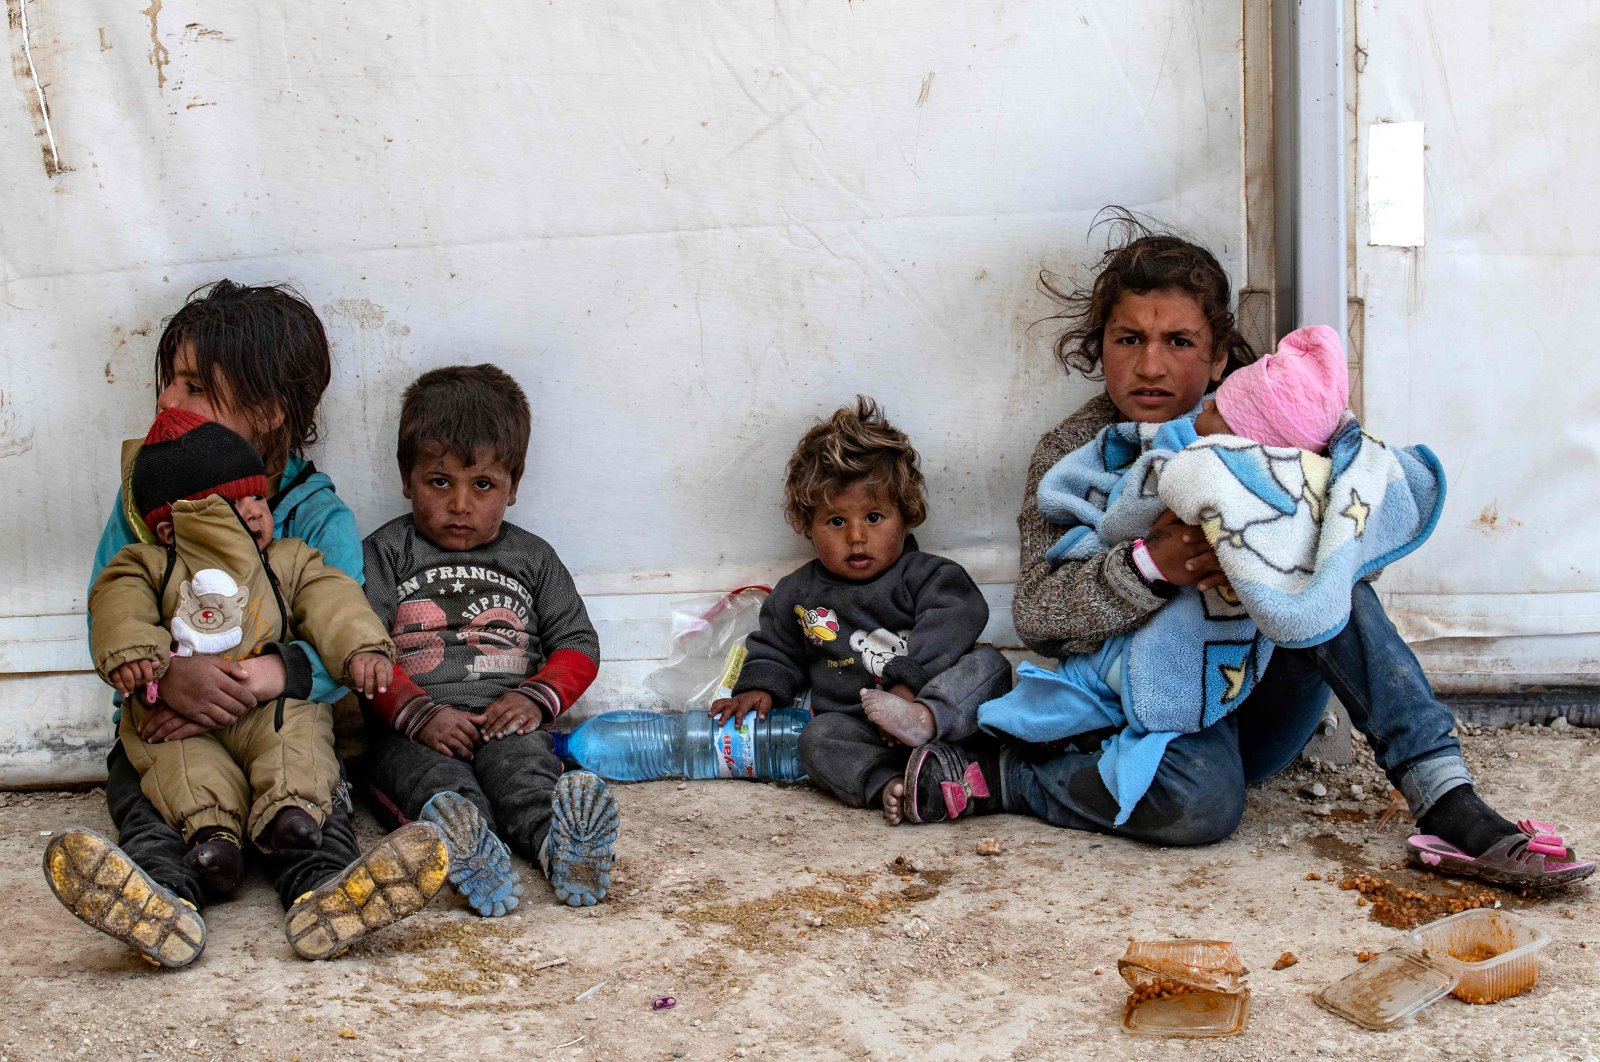 Syrian children sitting at the PKK/YPG terrorist group-run al-Hol camp which holds suspected relatives of Daesh terrorist group fighters, in Hasakeh governorate of northeastern Syria, March 18, 2021. (AFP File Photo)